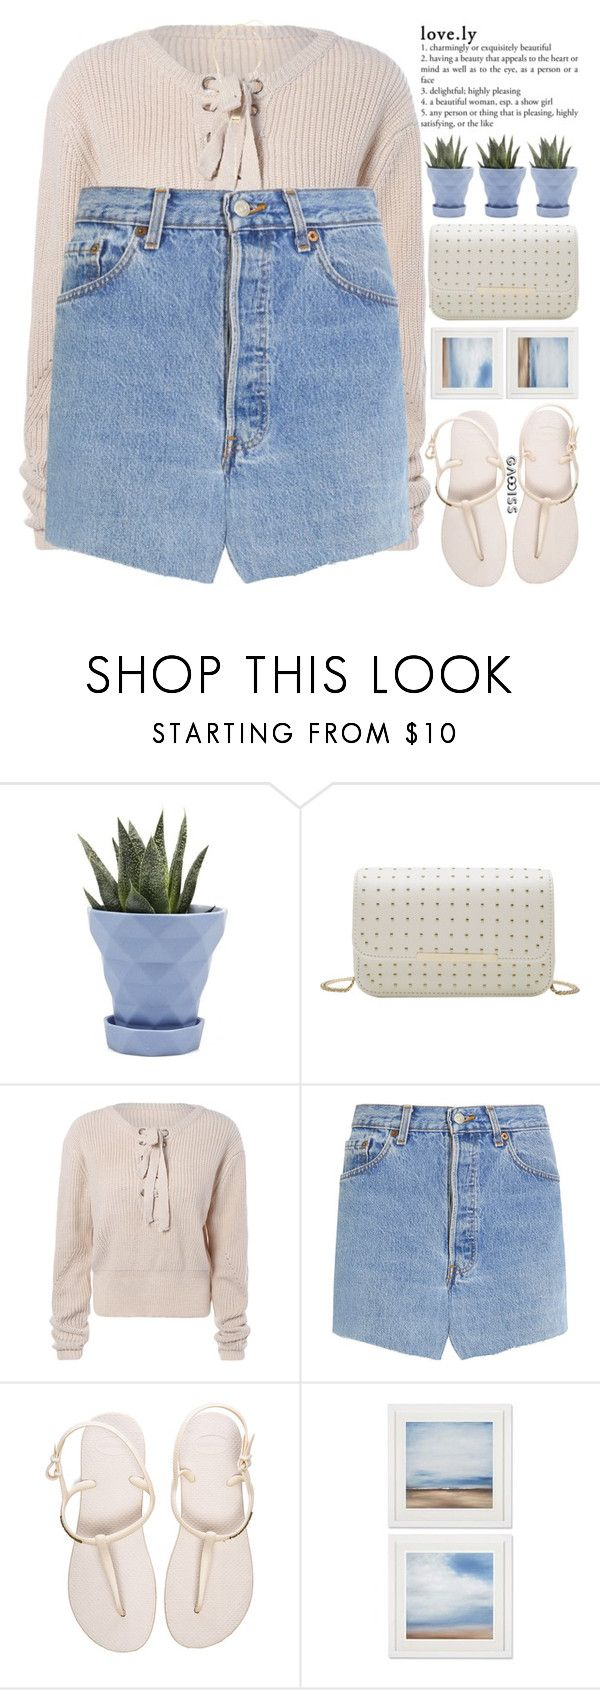 """you deserve something you don't have to question. you deserve someone who is sure of you"" by exco ❤ liked on Polyvore featuring Chive, Vetements, Havaianas, clean, neutrals, casualoutfit, organized and gamiss"